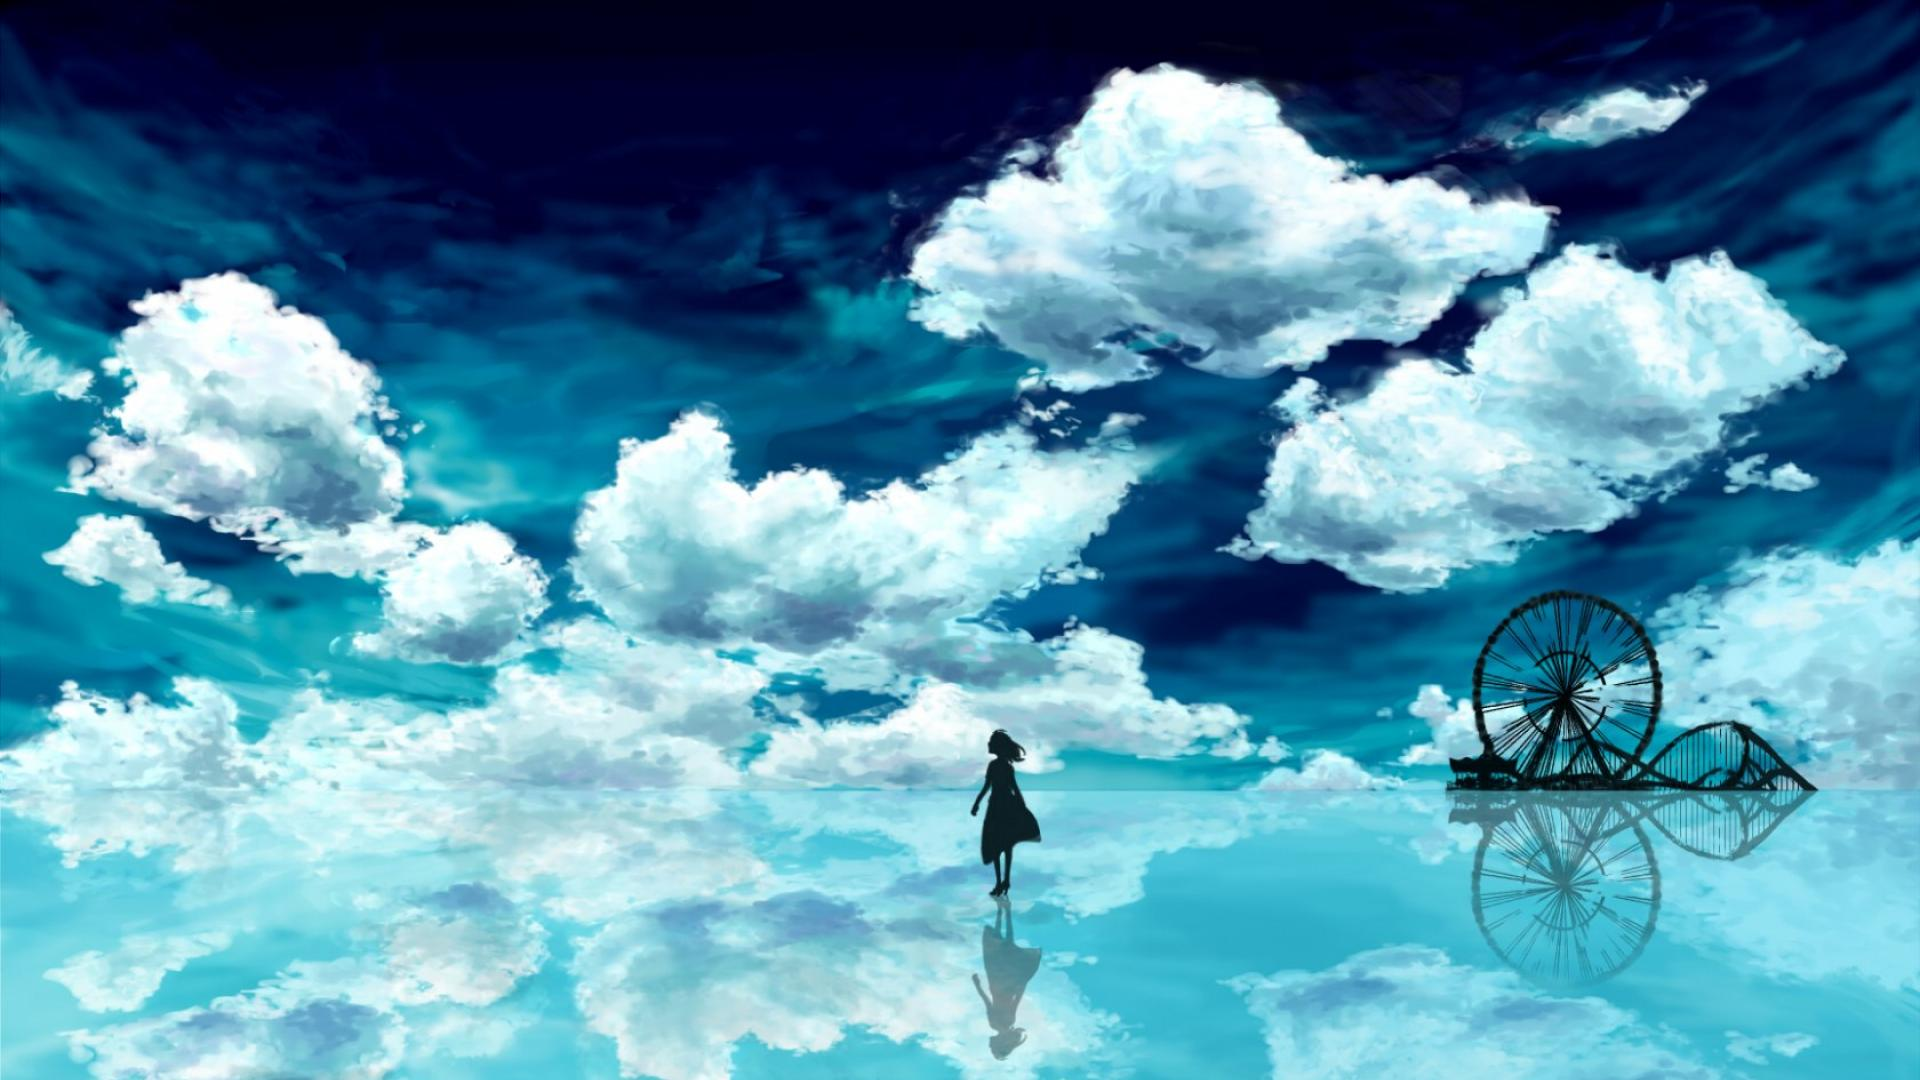 Anime blue sky hd wallpaper background image 1920x1080 - Blue anime wallpaper ...